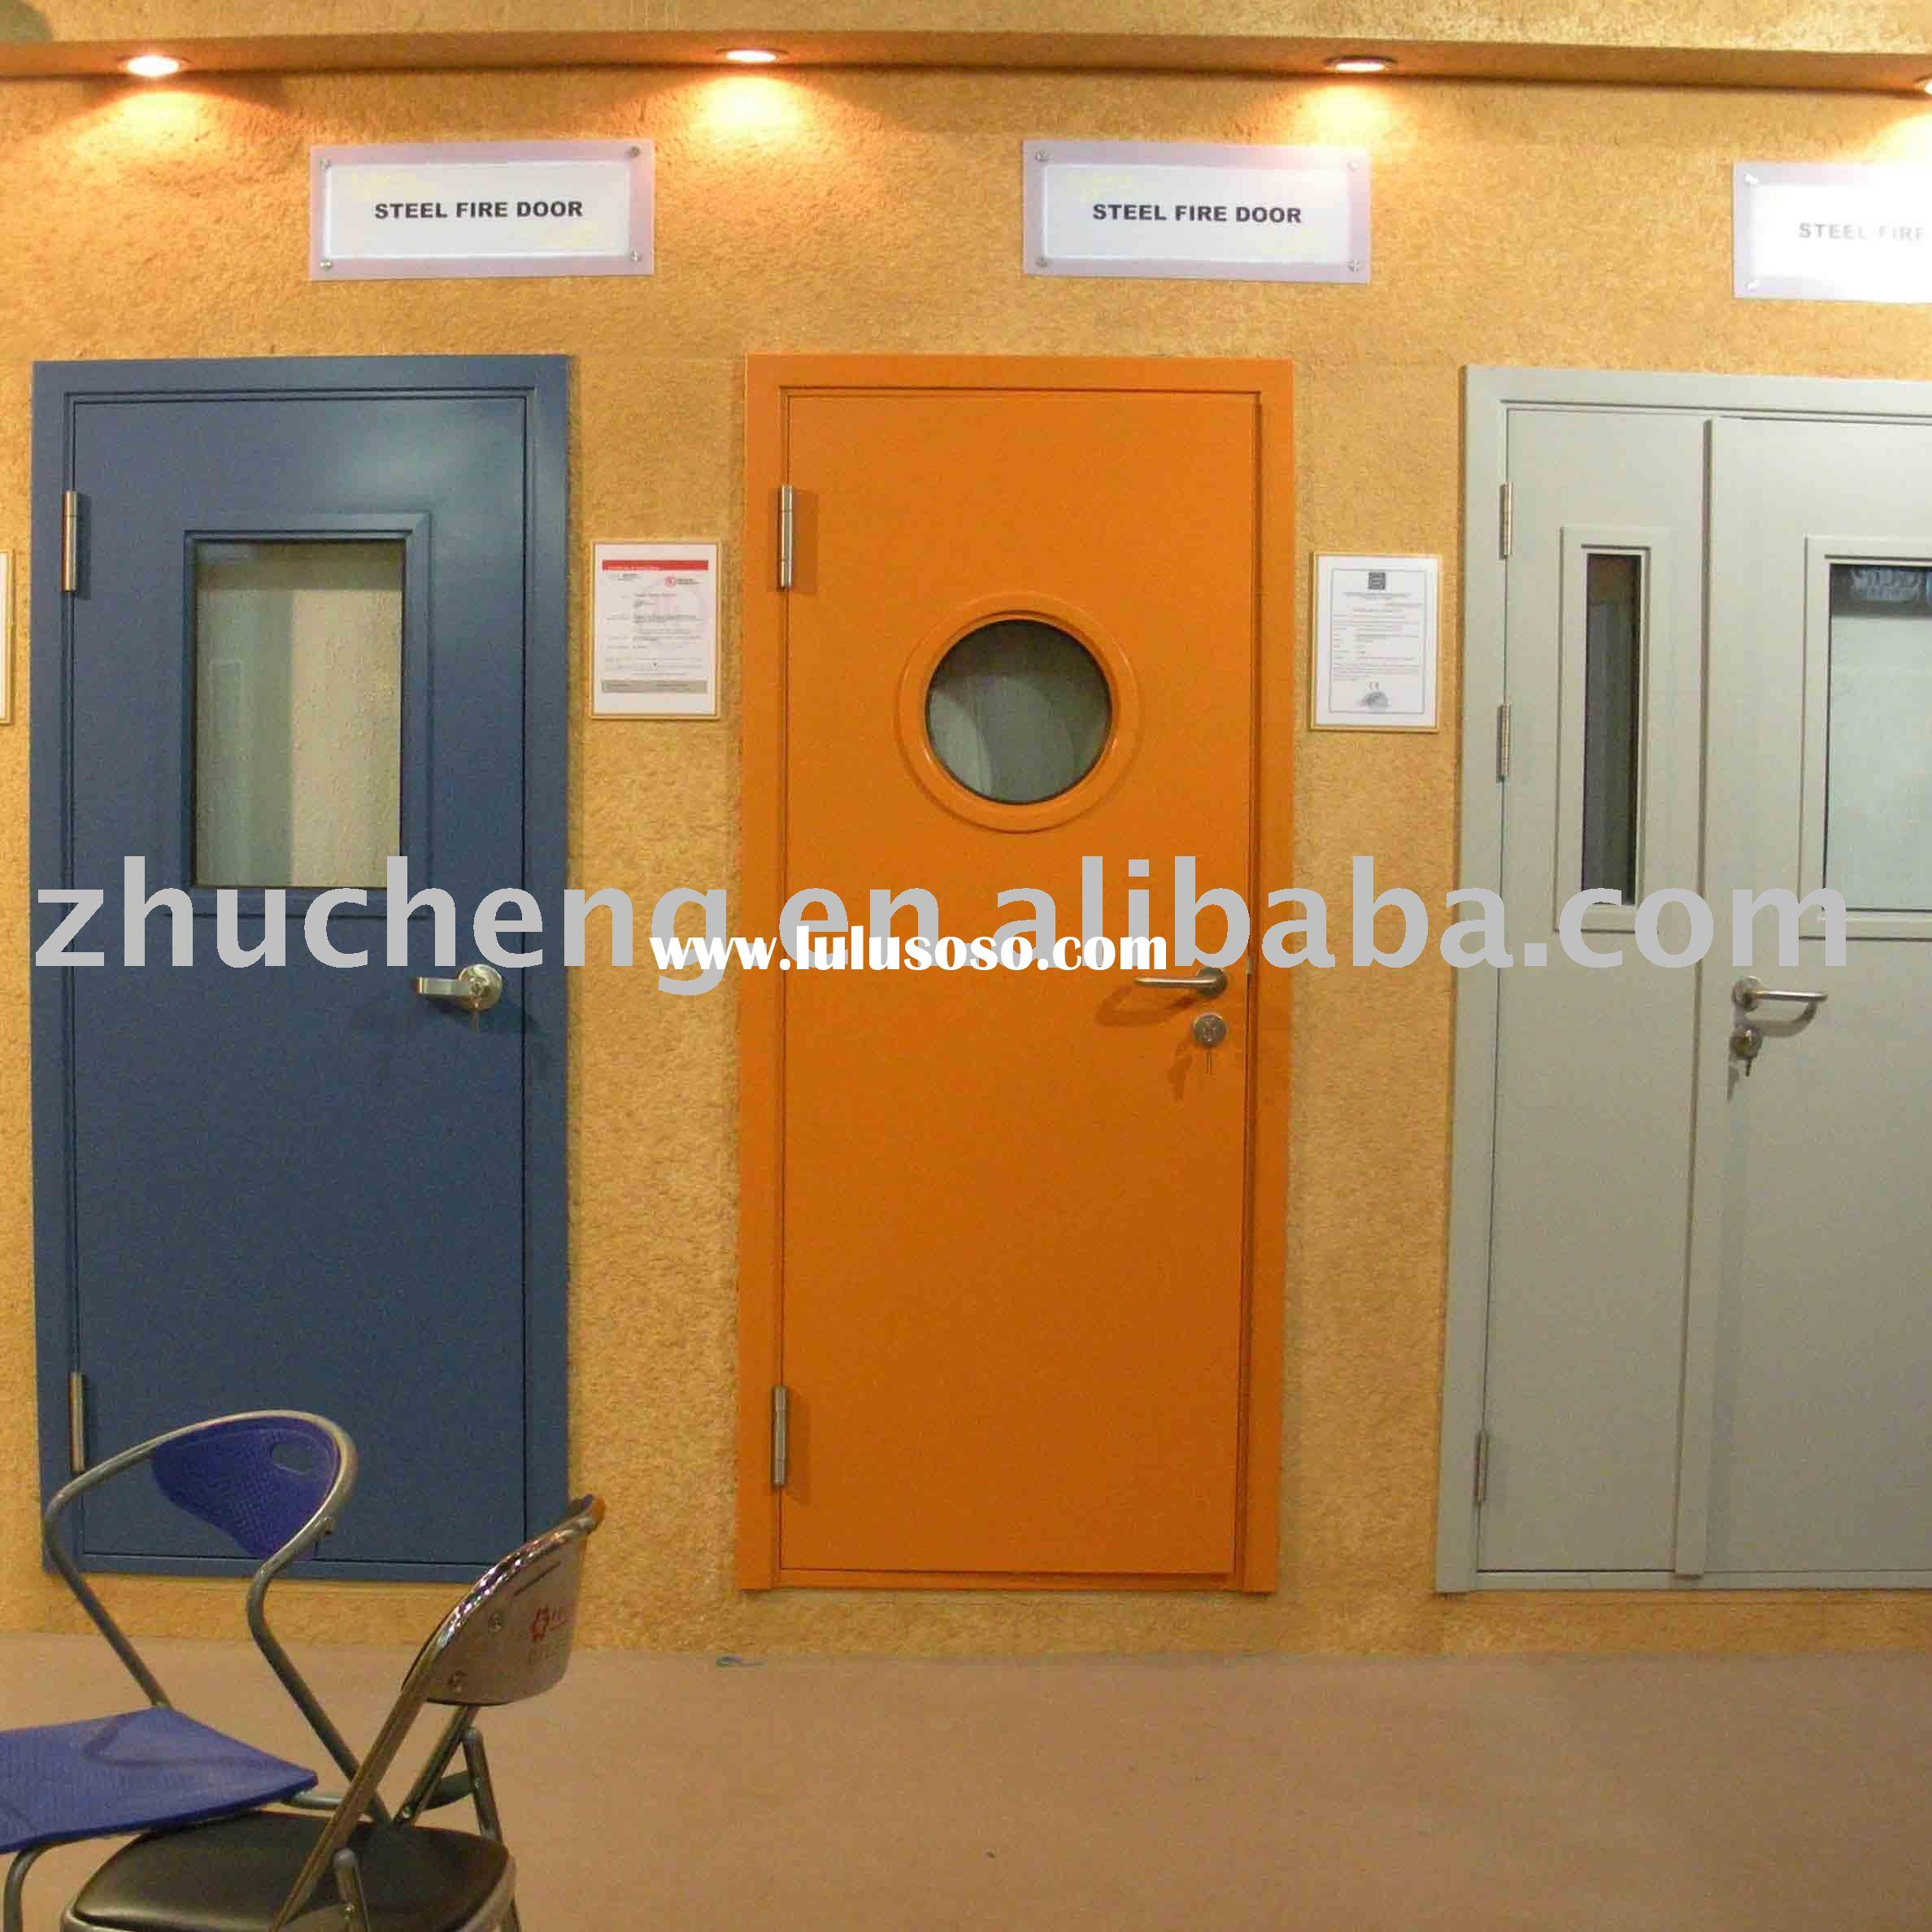 fire rated door with glass. 23765085195057882376 fire rated steel door manufacturers in lulusoso 804717 20 minute with glass